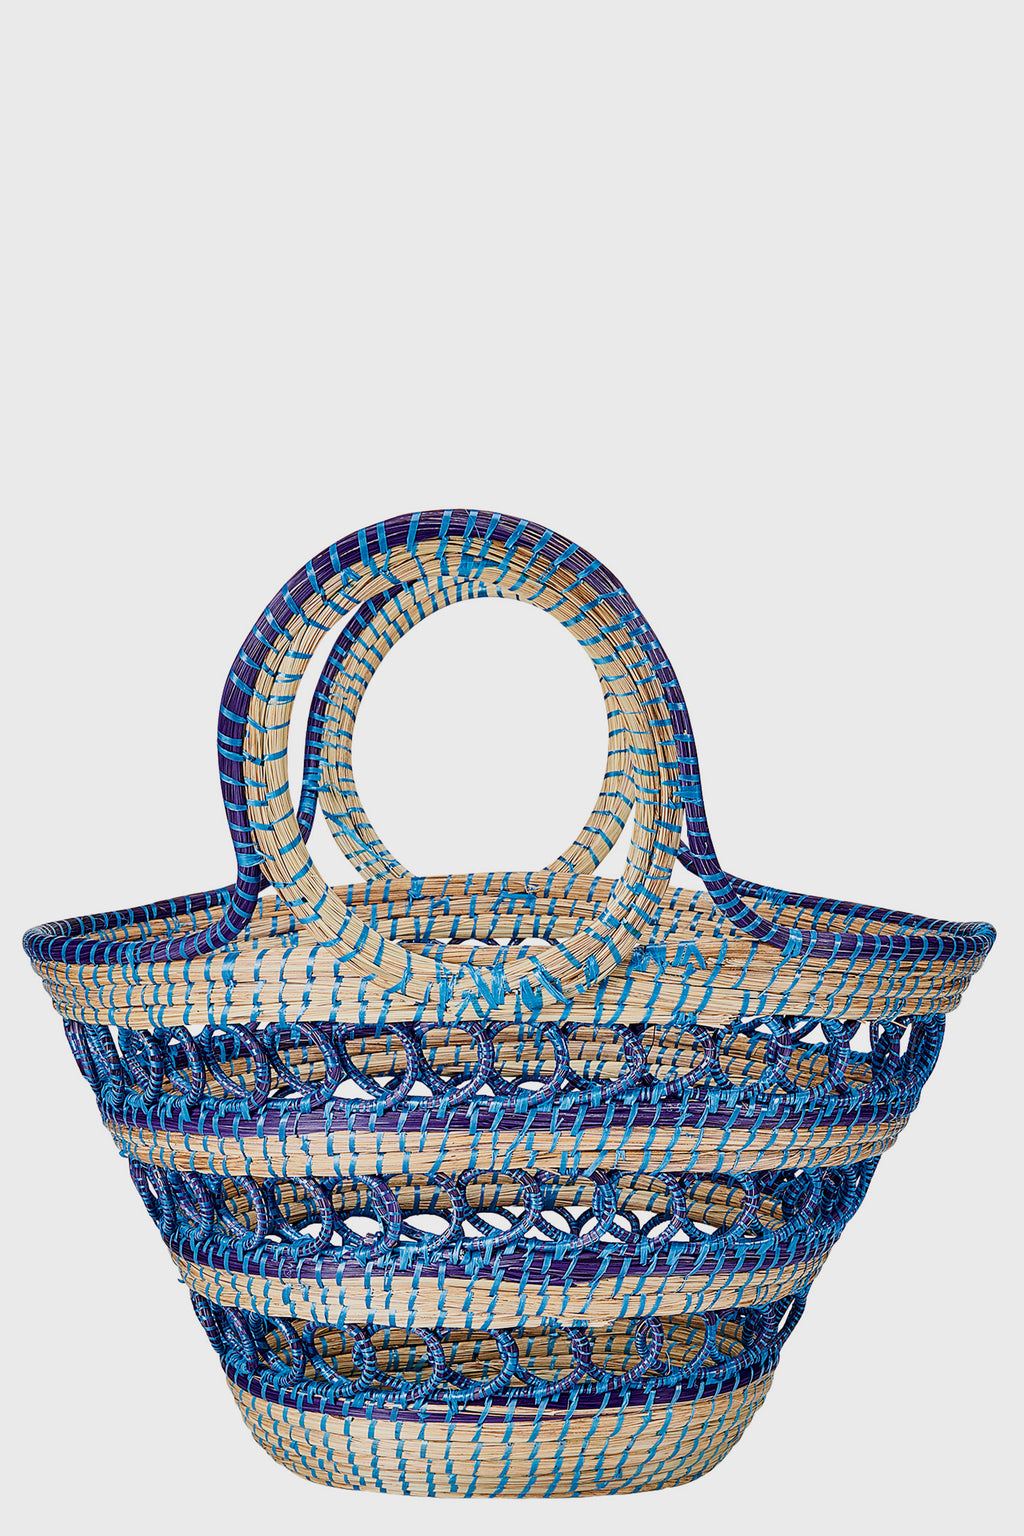 Hand Woven Straw Market Tote (BSB3686)-TOTE-BaySky